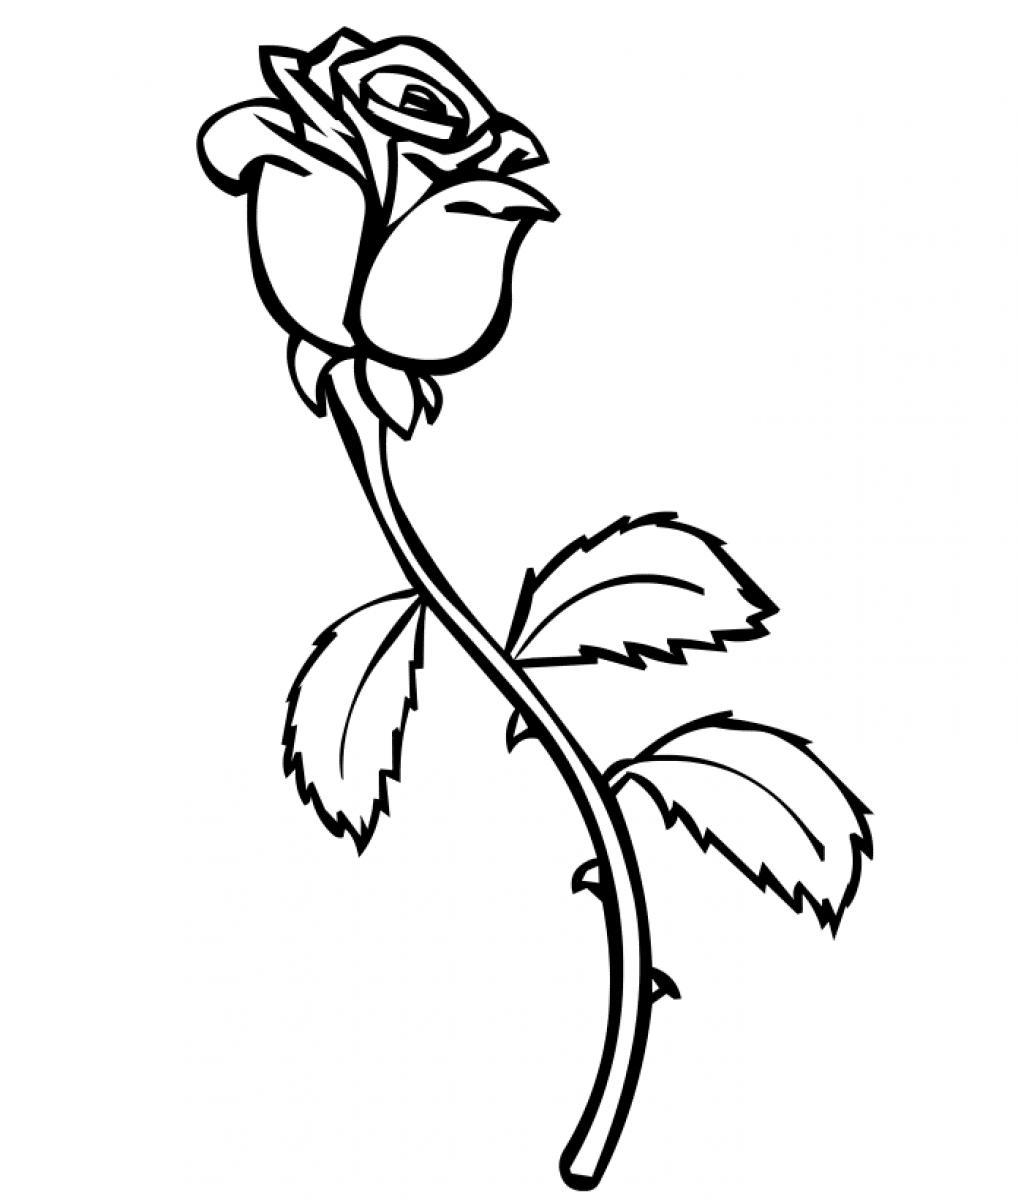 Flower Coloring Pages for Adults - Malvorlagen Fur Kinder Ausmalbilder Rose Kostenlos